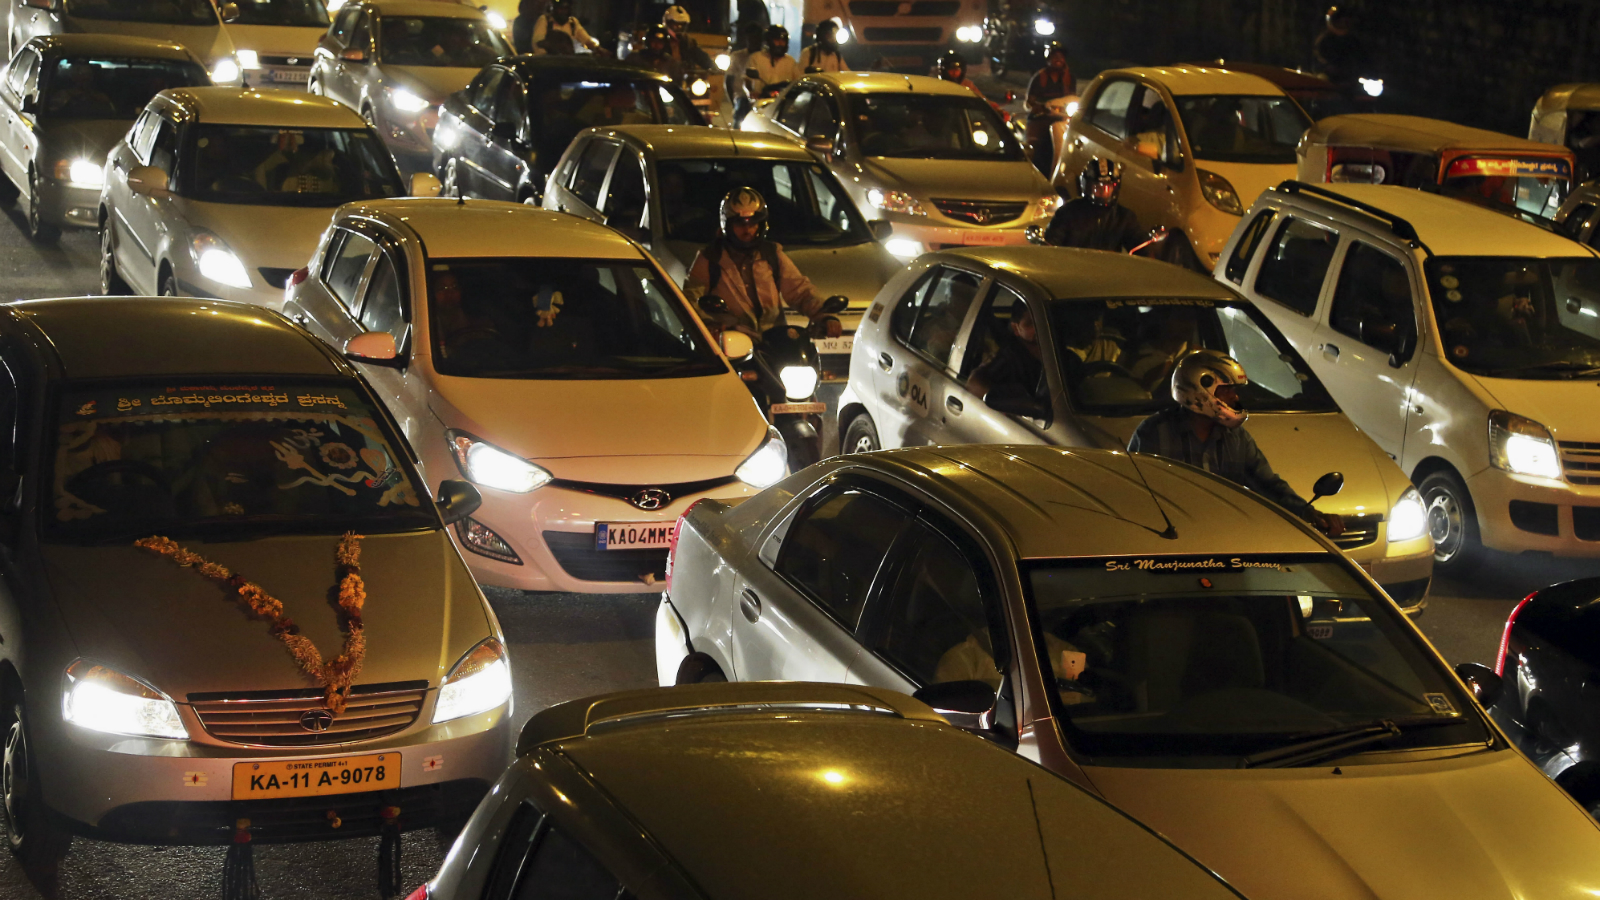 Traffic moves slowly during rush-hour in Bangalore, India, Tuesday, June 2, 2015. India's central bank cut a key interest rate by a quarter percentage point Tuesday, the third such reduction this year in support of government efforts to boost growth.